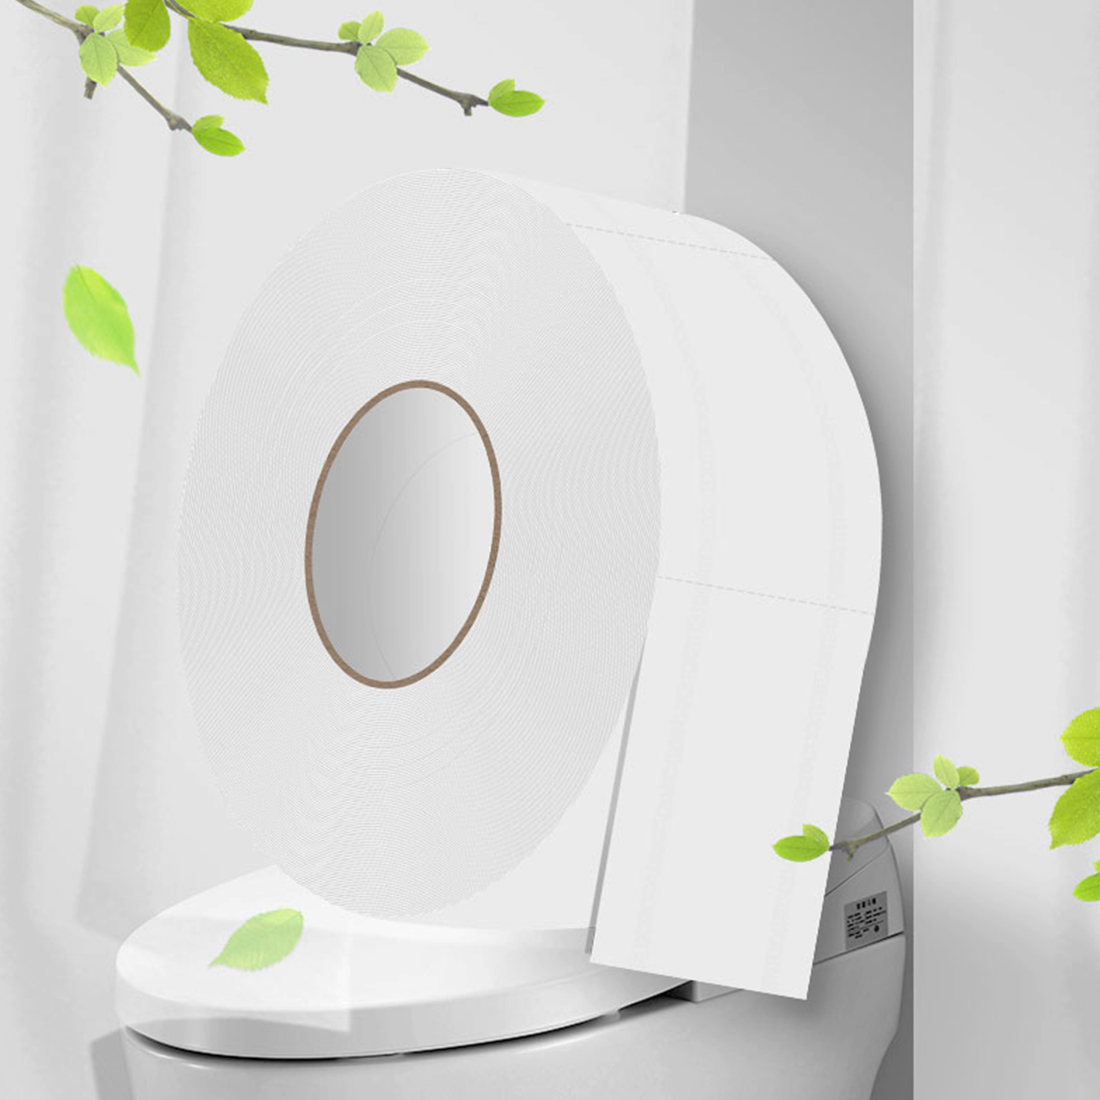 1 Roll White Toilet Paper 580g 900+sheets Jumbo Roll Soft Tissue Towels For Home Public Hotel Strong Water Absorption